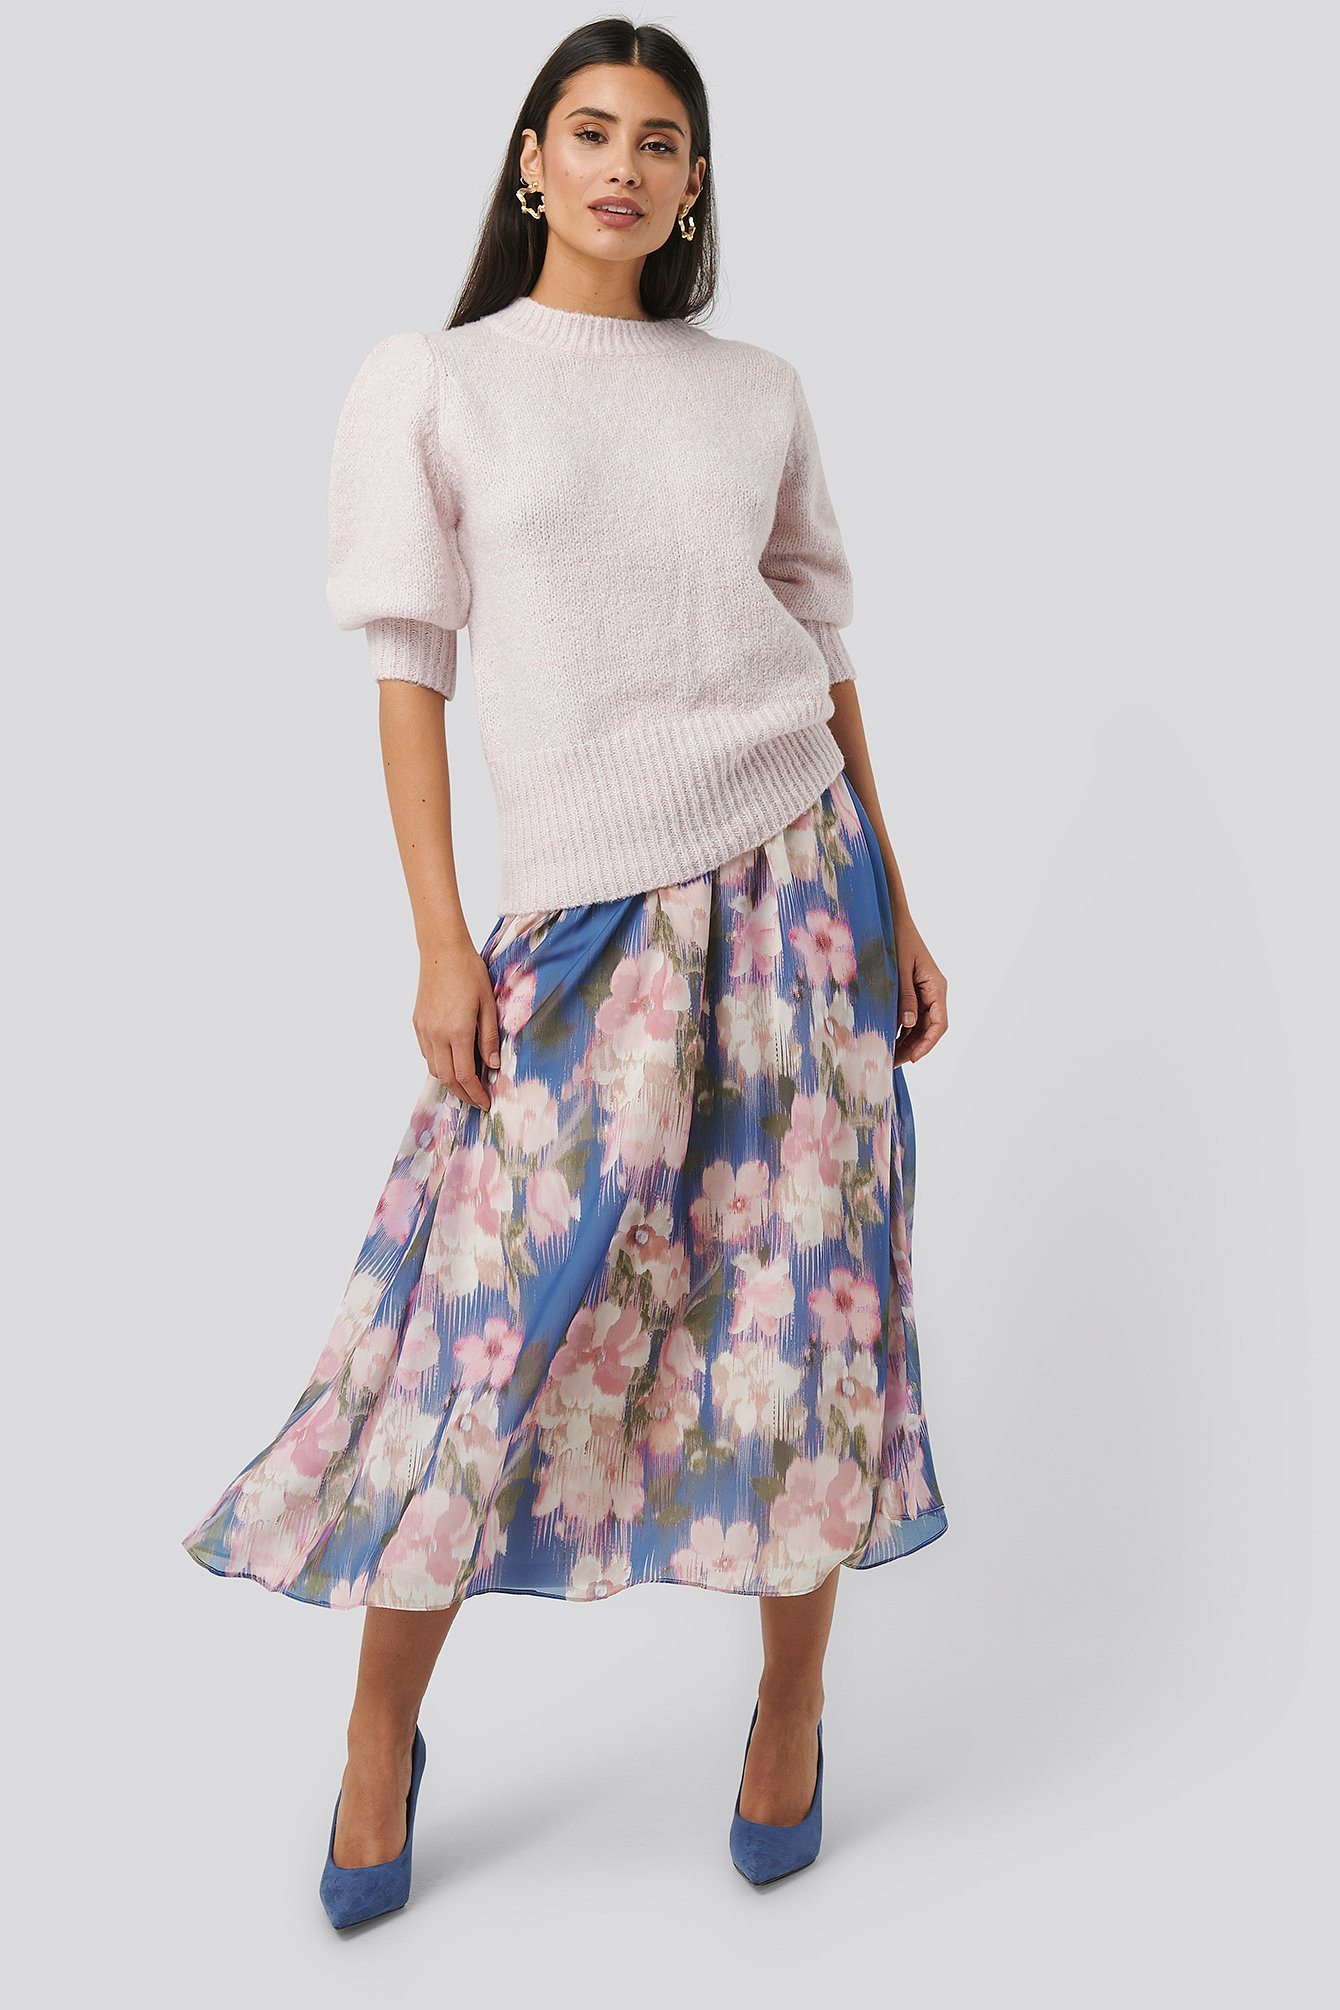 Blue Flower Flowy Chiffon Skirt